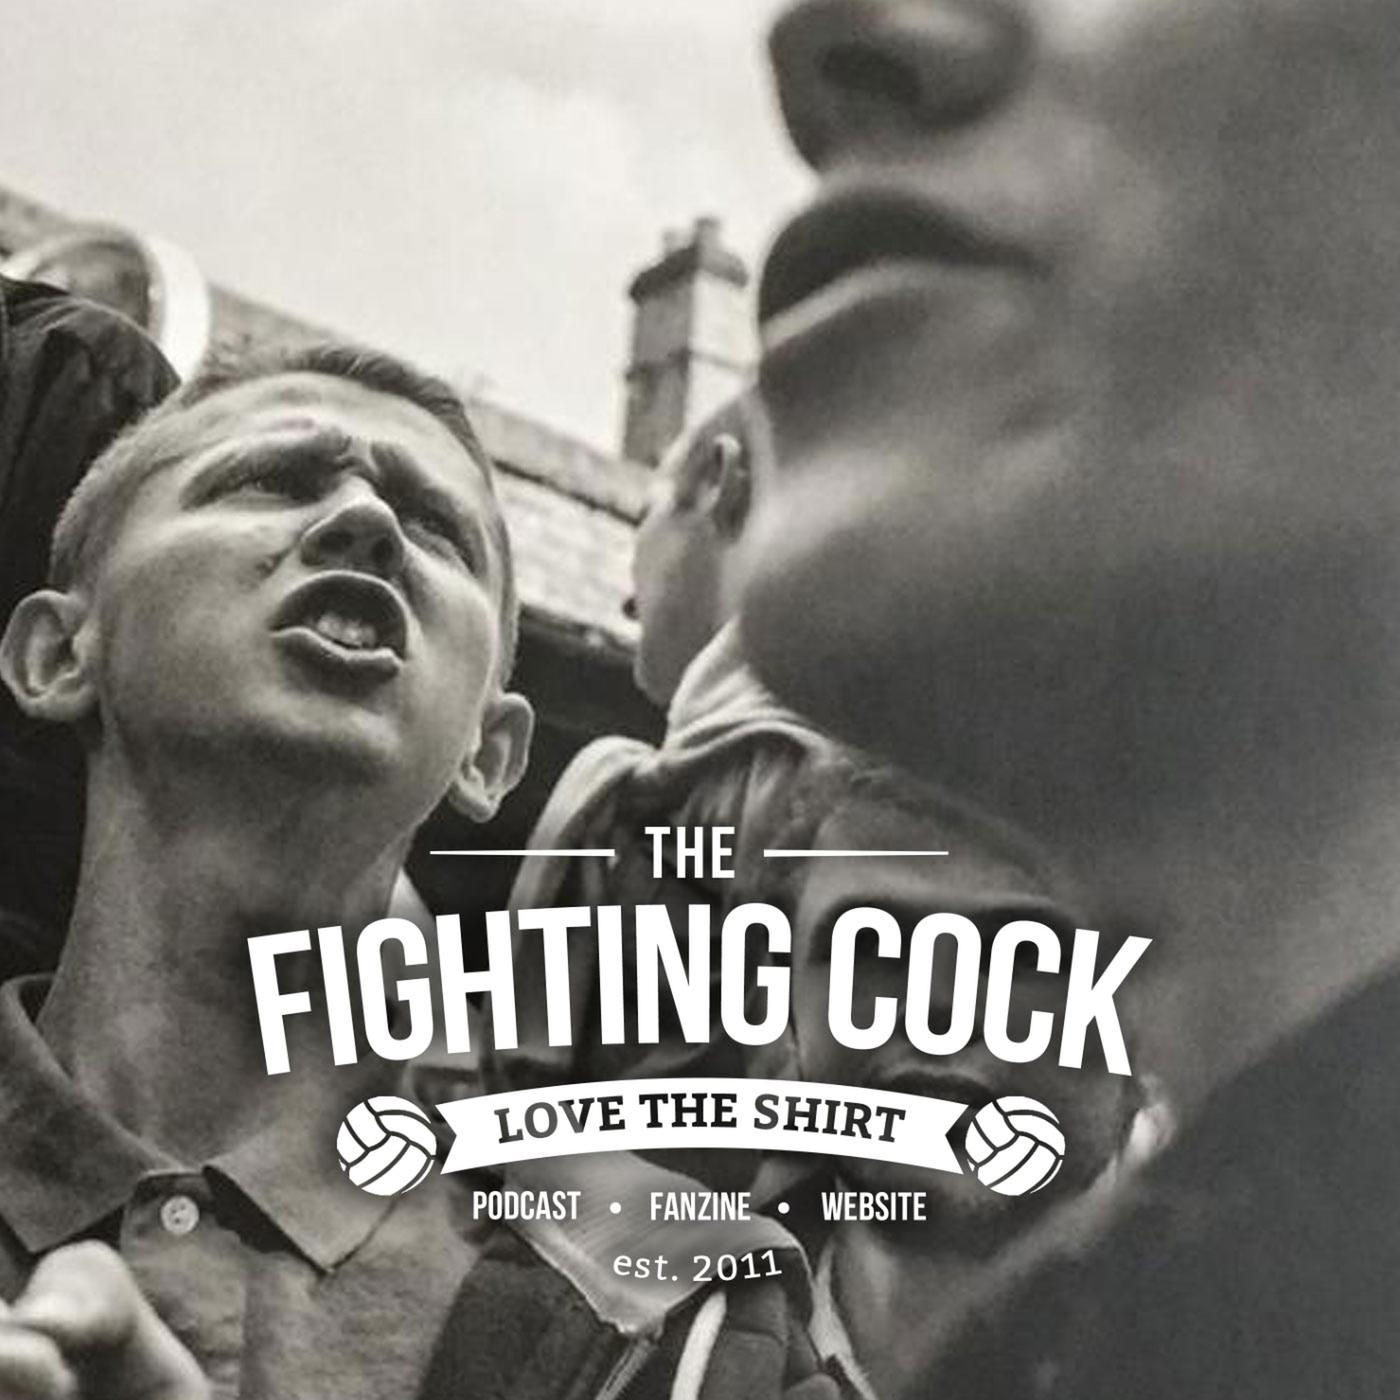 The fighting cock